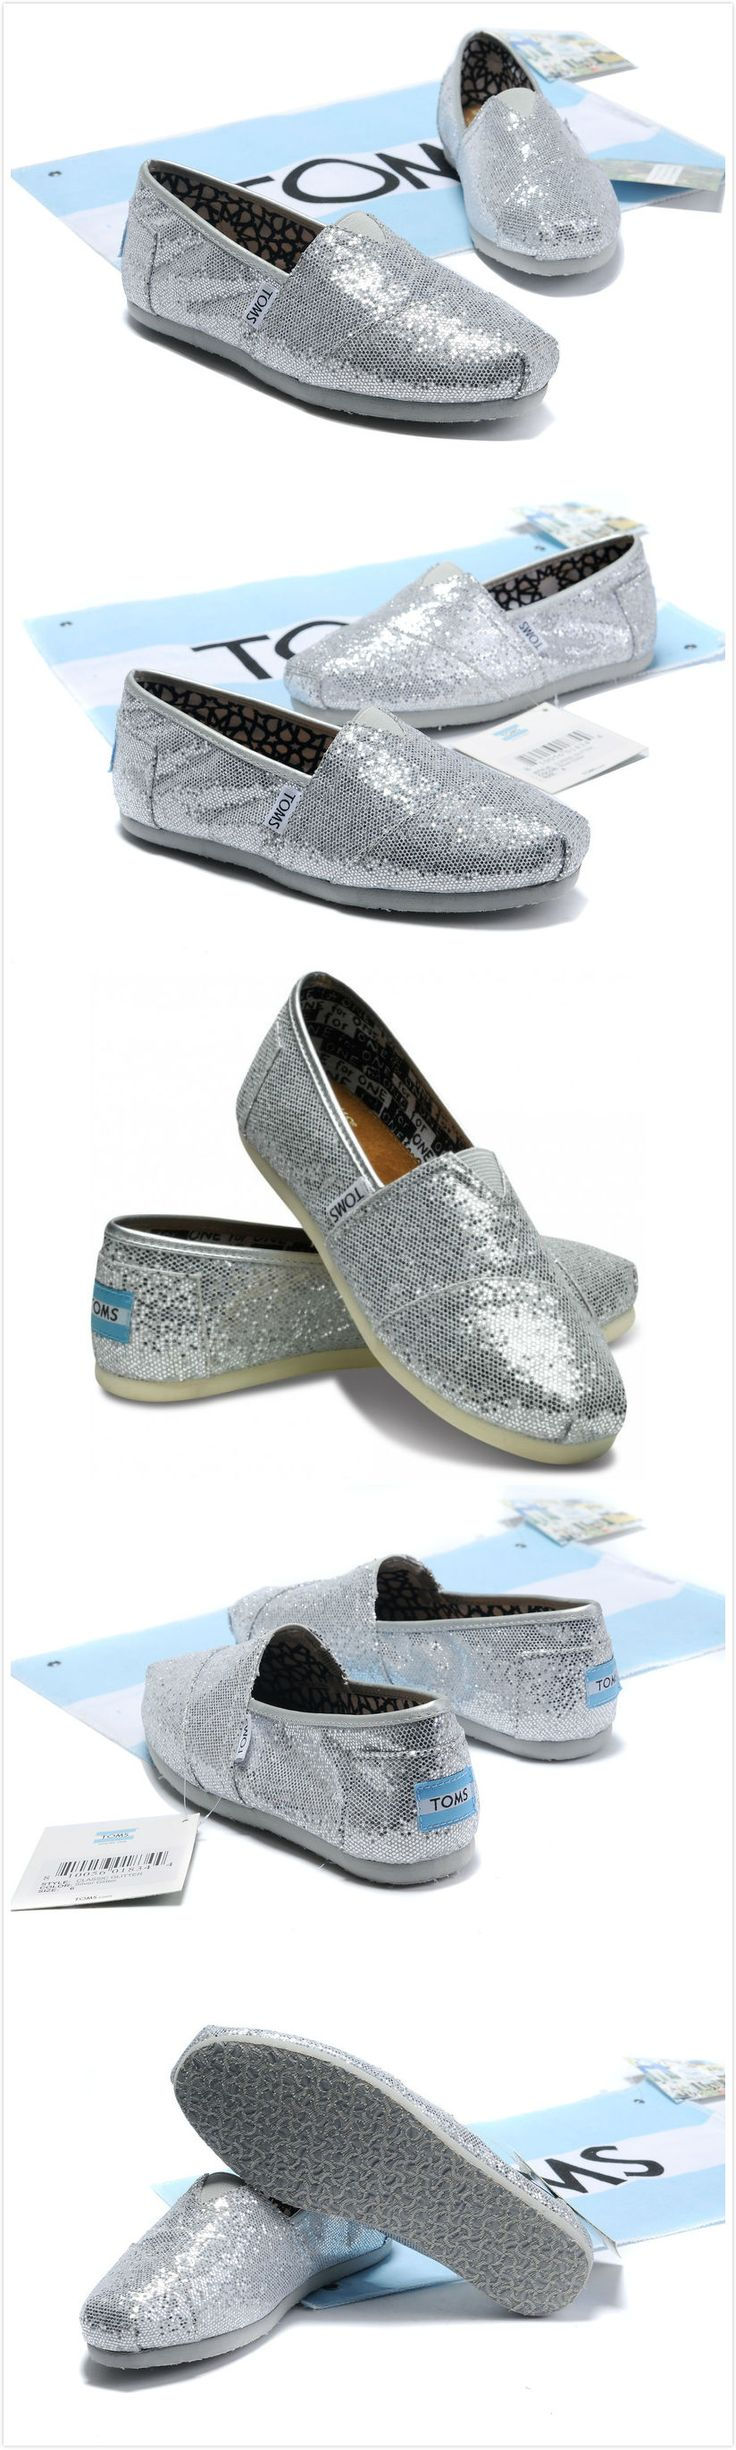 It's pretty cool (: / Toms Shoes OUTLET.$16.89! Same company, lots of sizes! Must remember this!